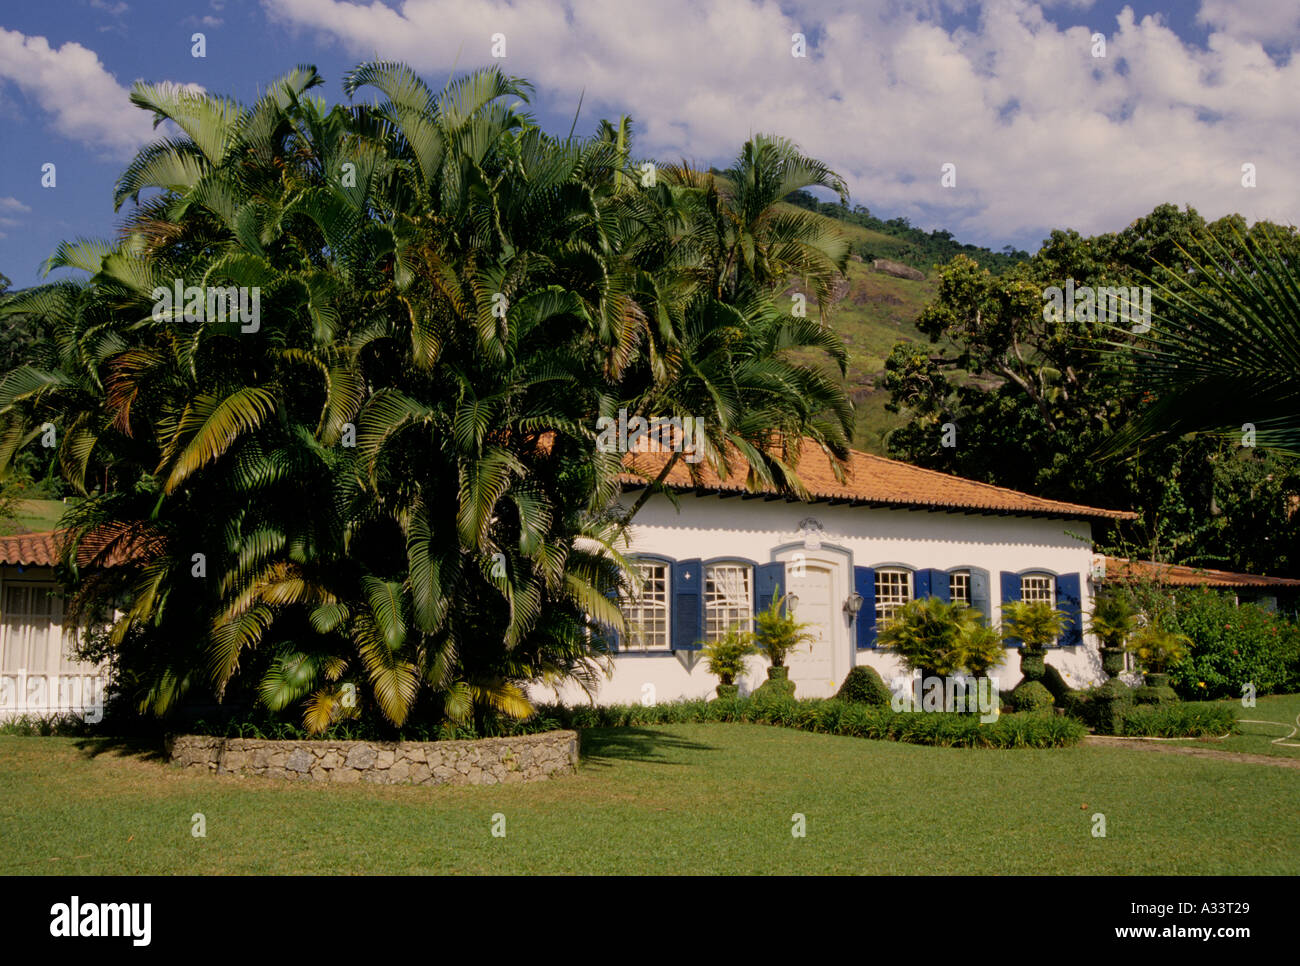 Stock photo country house with tropical garden in ilha bela brazil